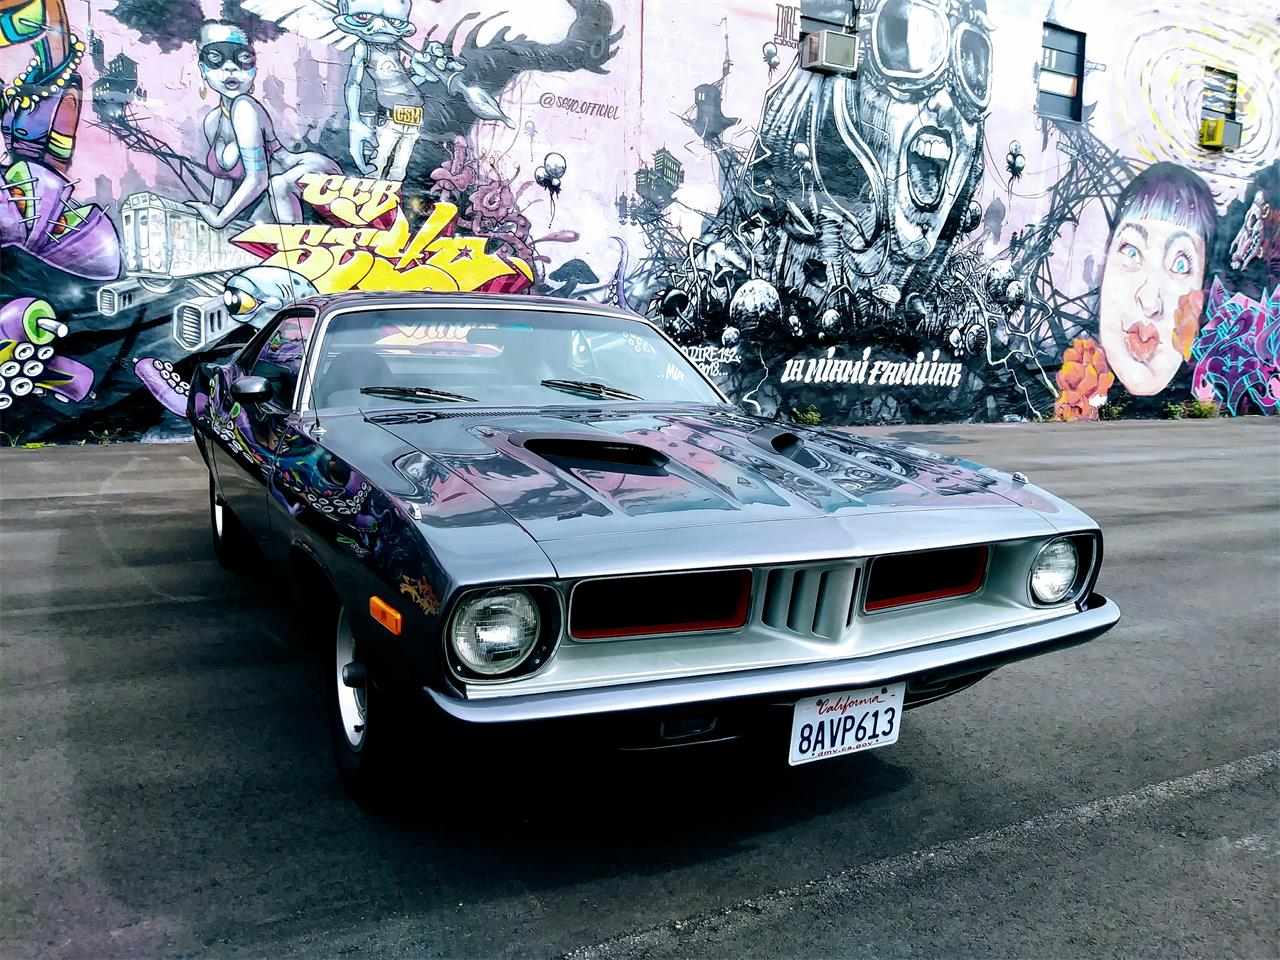 Large Picture of 1973 Plymouth Barracuda - $43,000.00 Offered by a Private Seller - PUNY